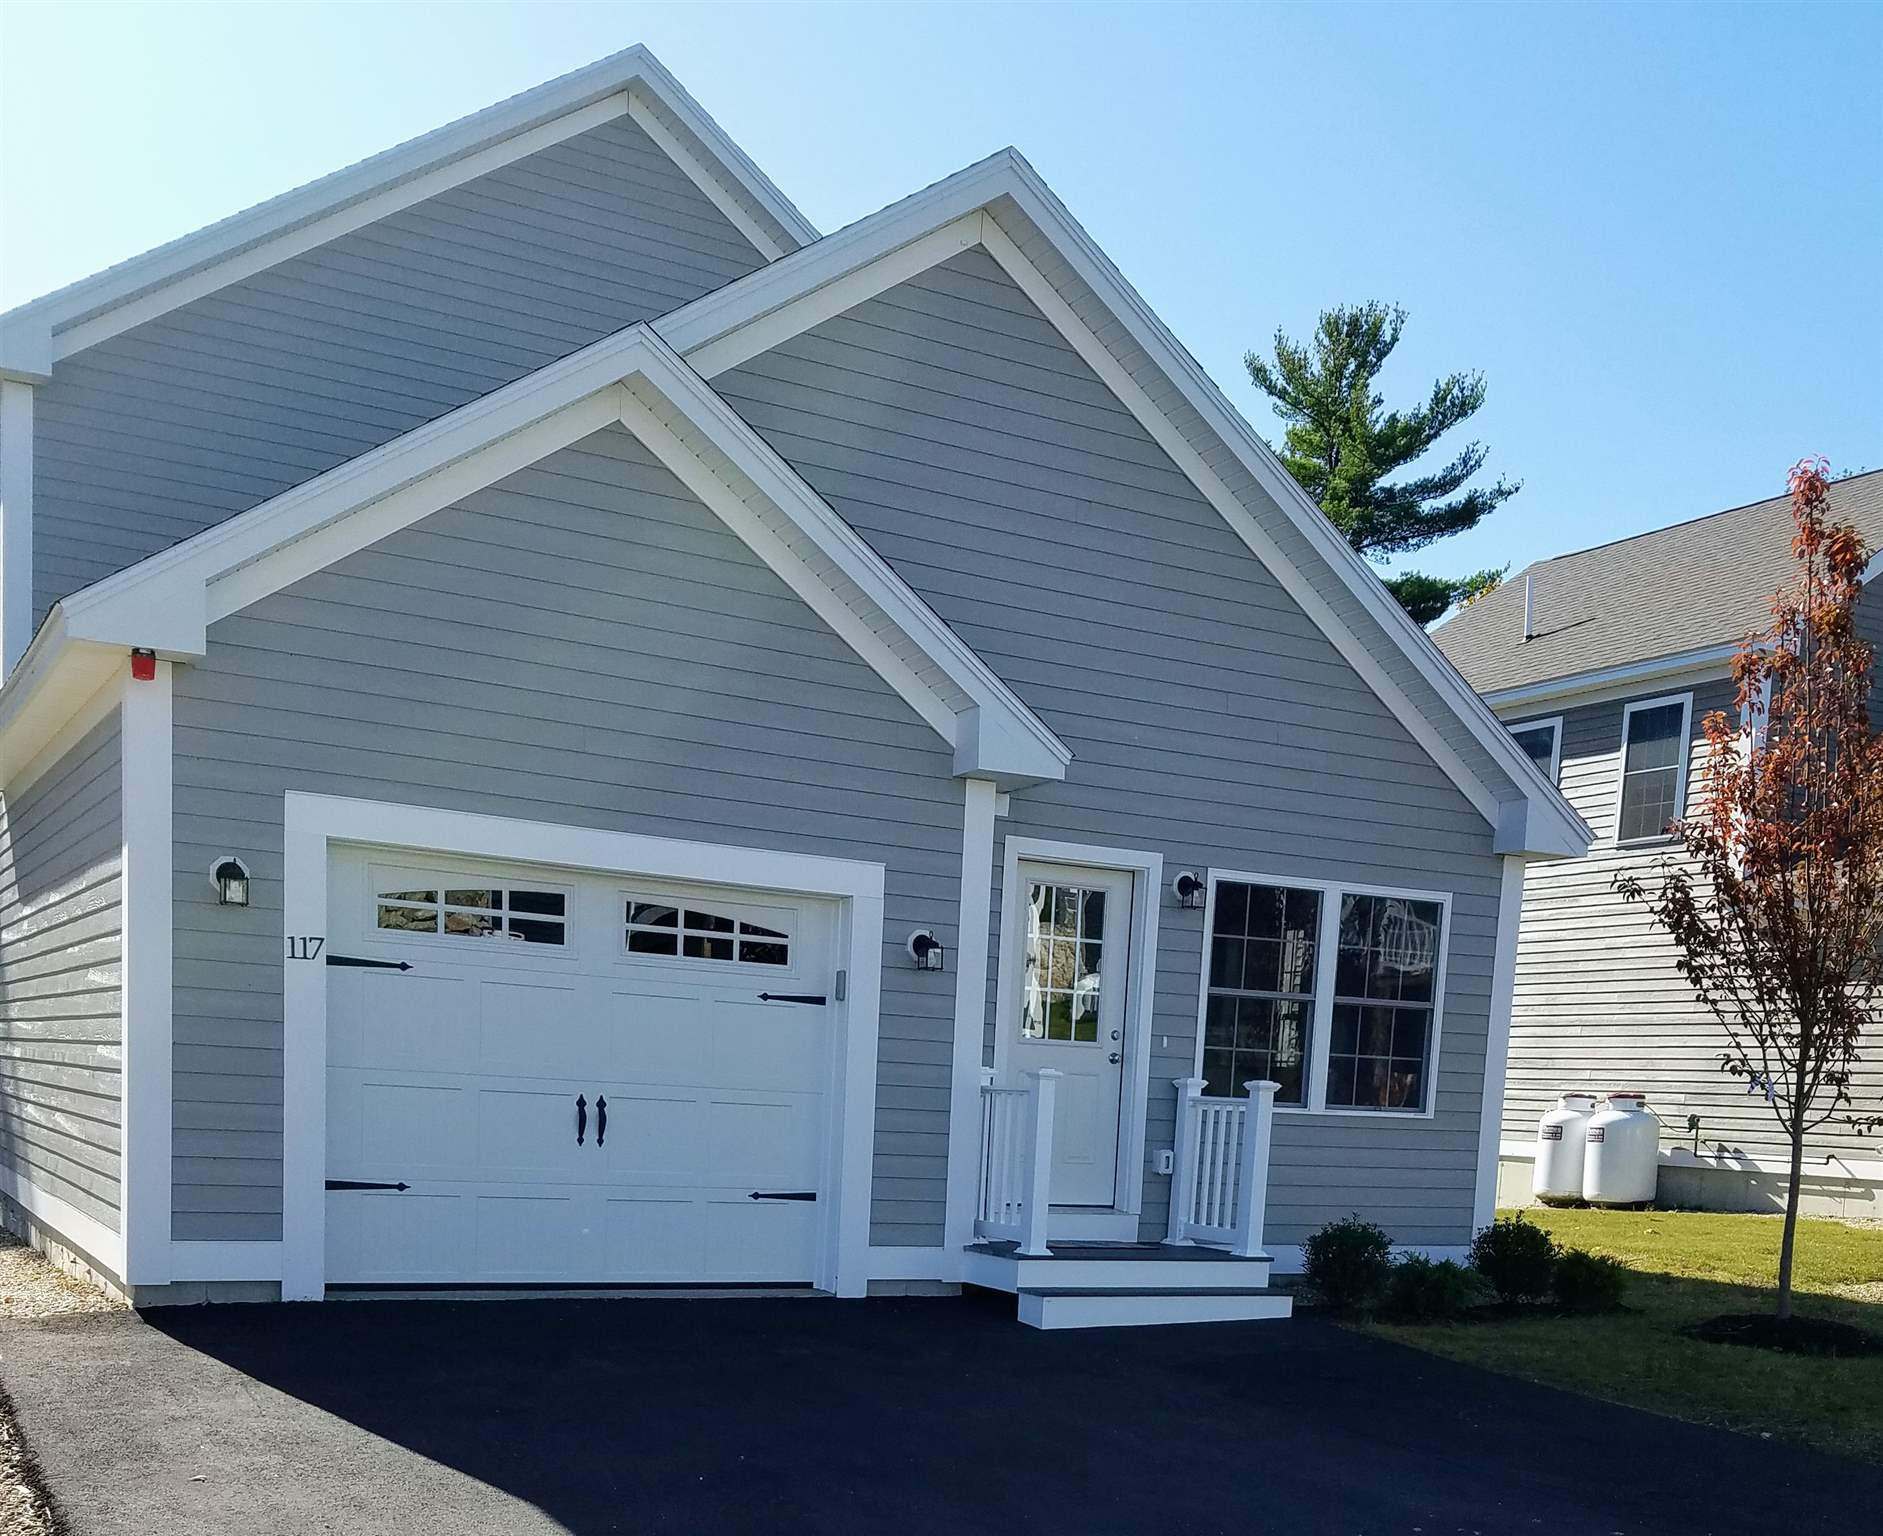 Photo of 117 Memory Lane Laconia NH 03246